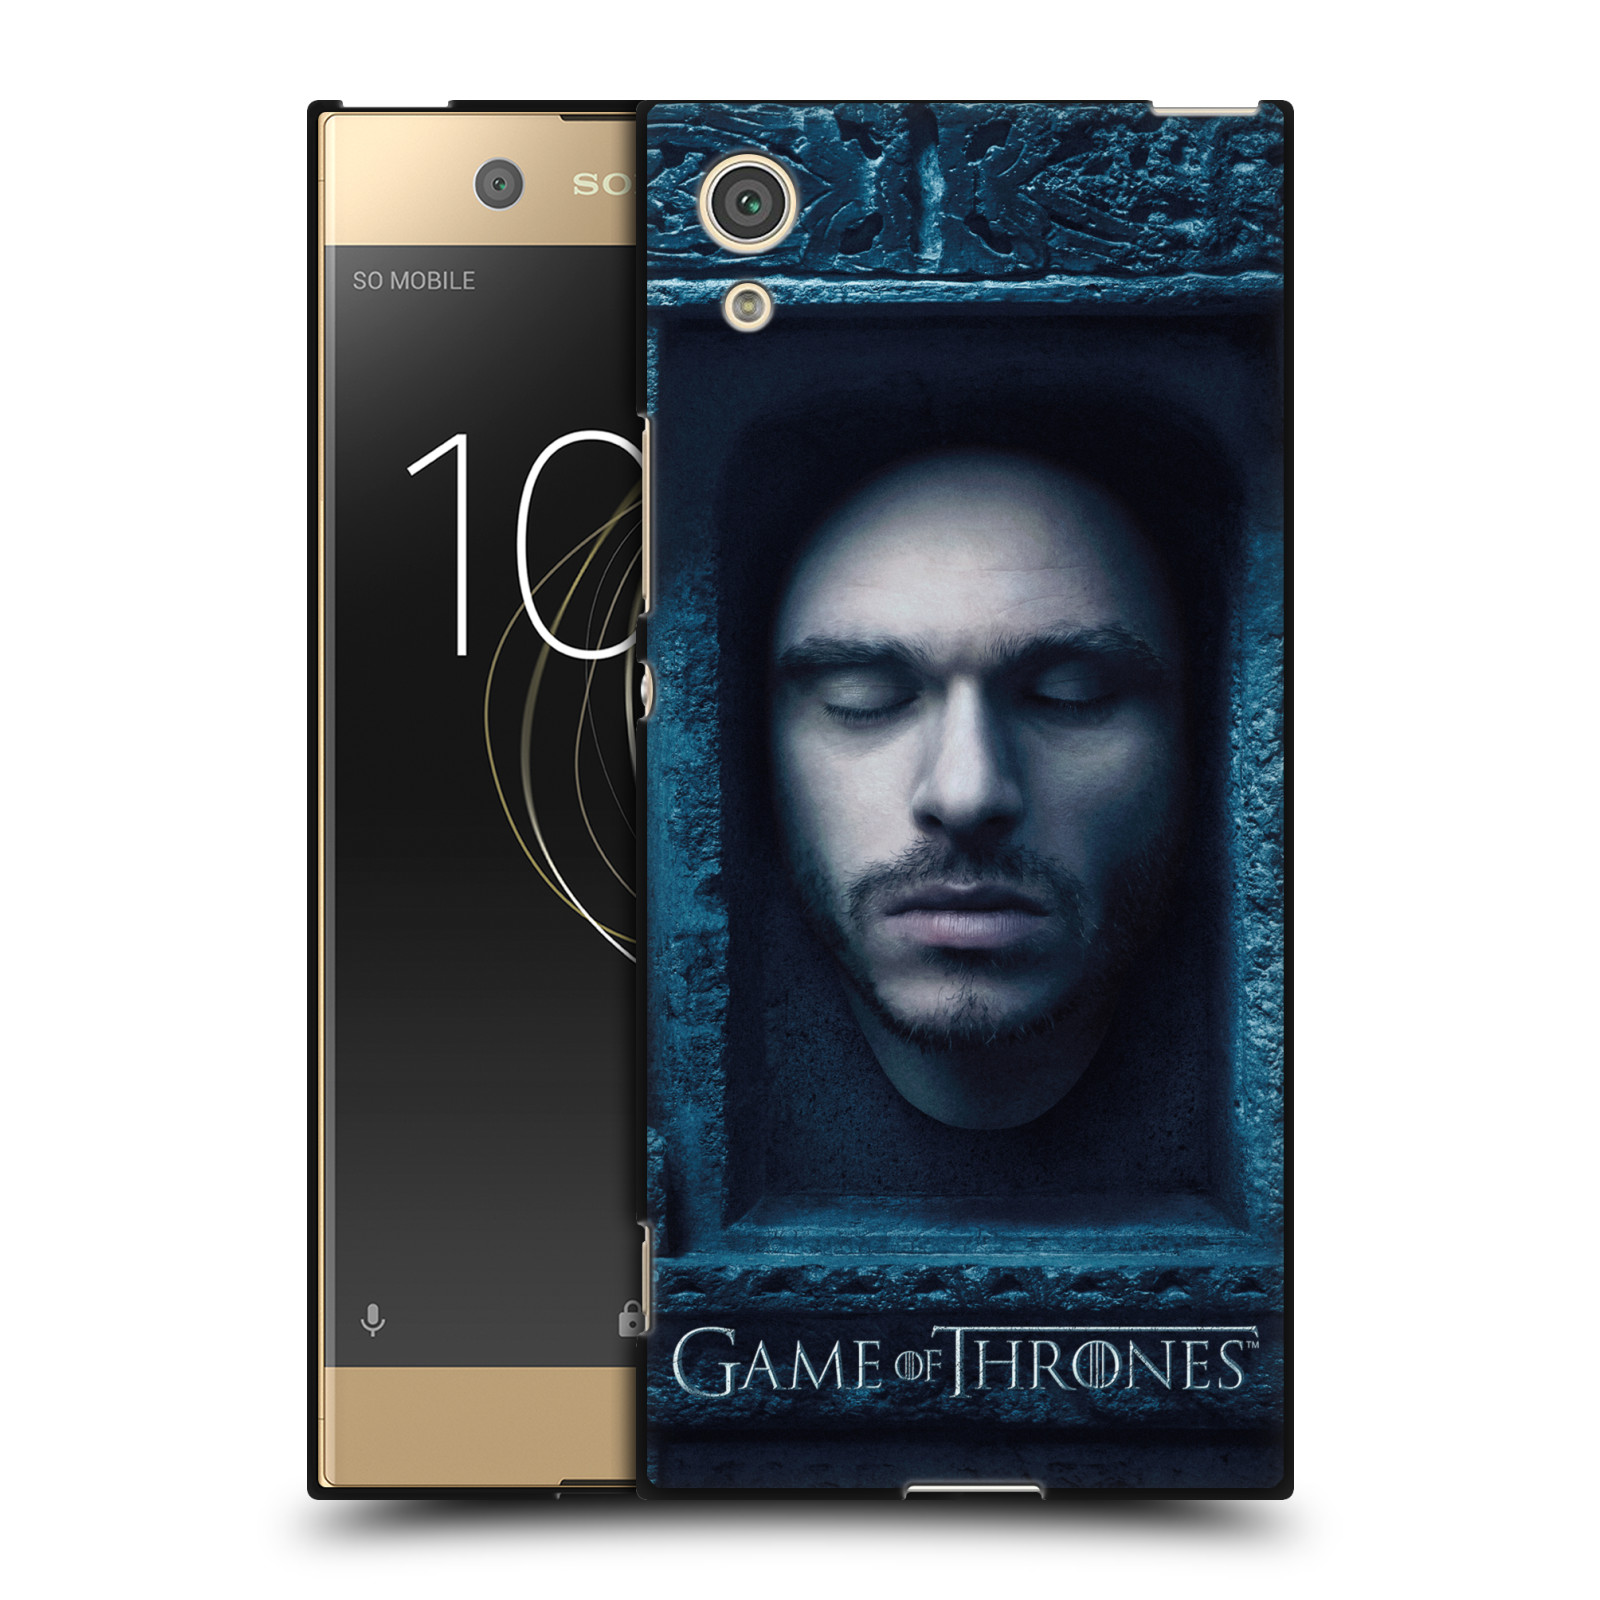 OFFICIAL-HBO-GAME-OF-THRONES-FACES-BLACK-SOFT-GEL-CASE-FOR-SONY-PHONES